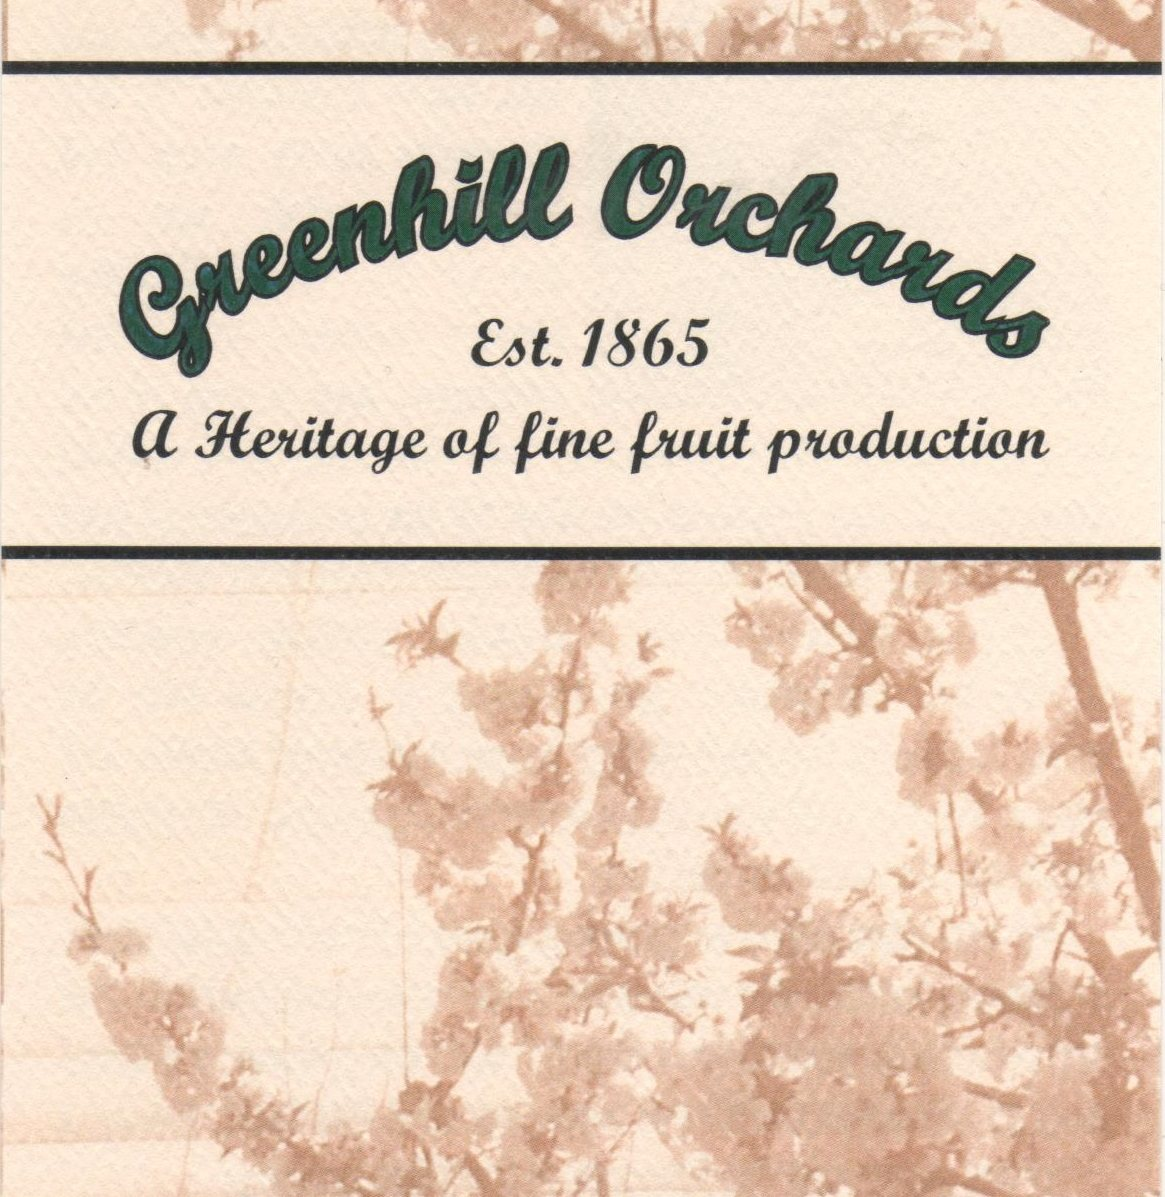 Greenhill Orchards